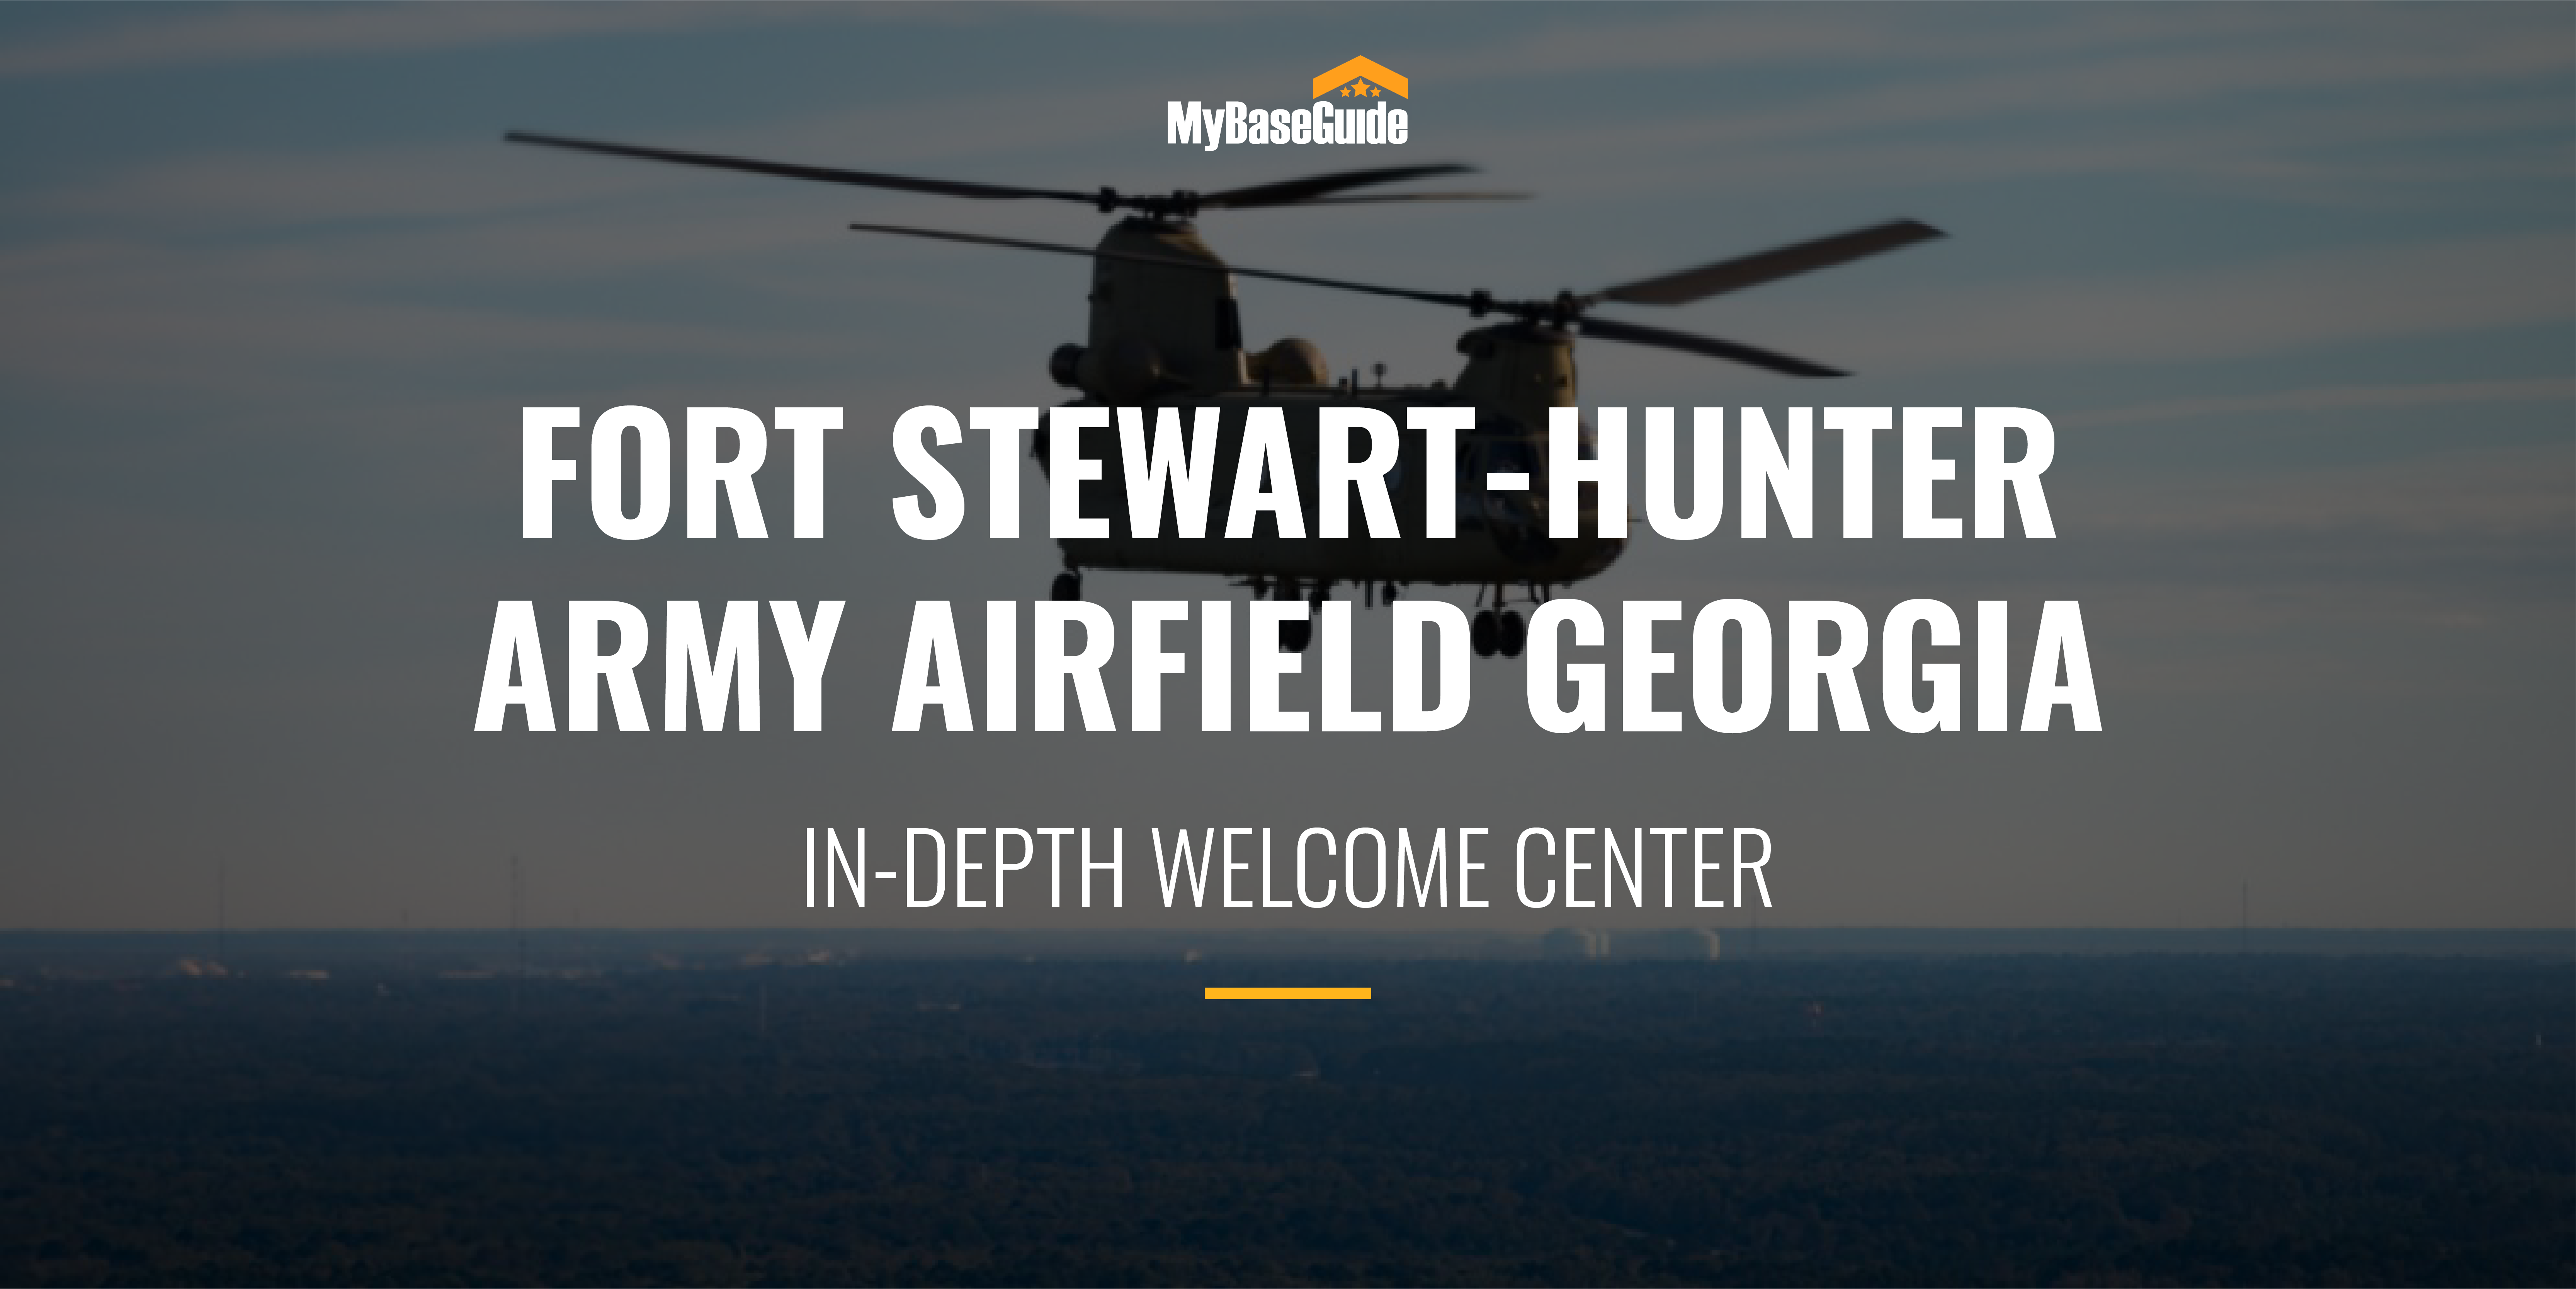 Fort Stewart-Hunter Army Airfield Georgia: In-Depth Welcome Center